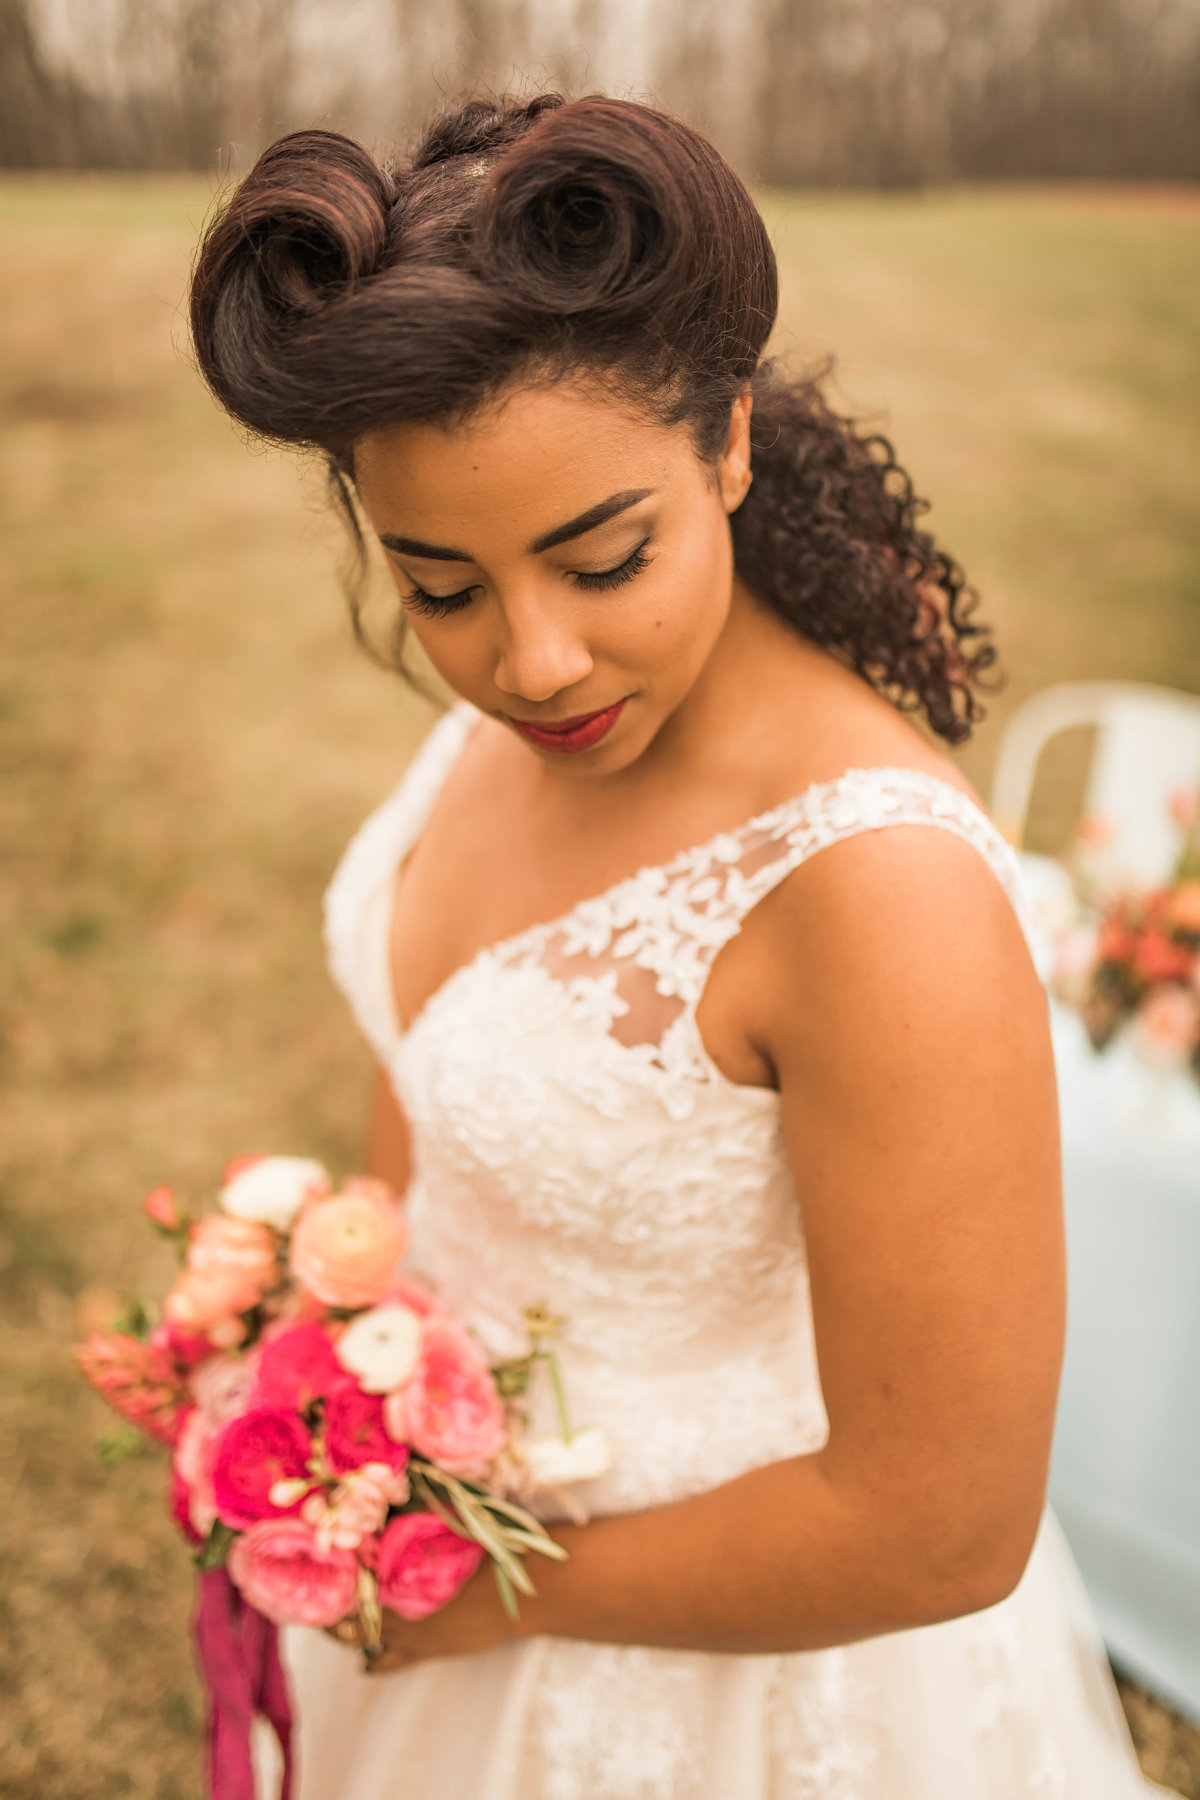 Retro Styled Shoot - Sophia and Andrew - St Louis Wedding Photographer - Allison Slater Photography 107